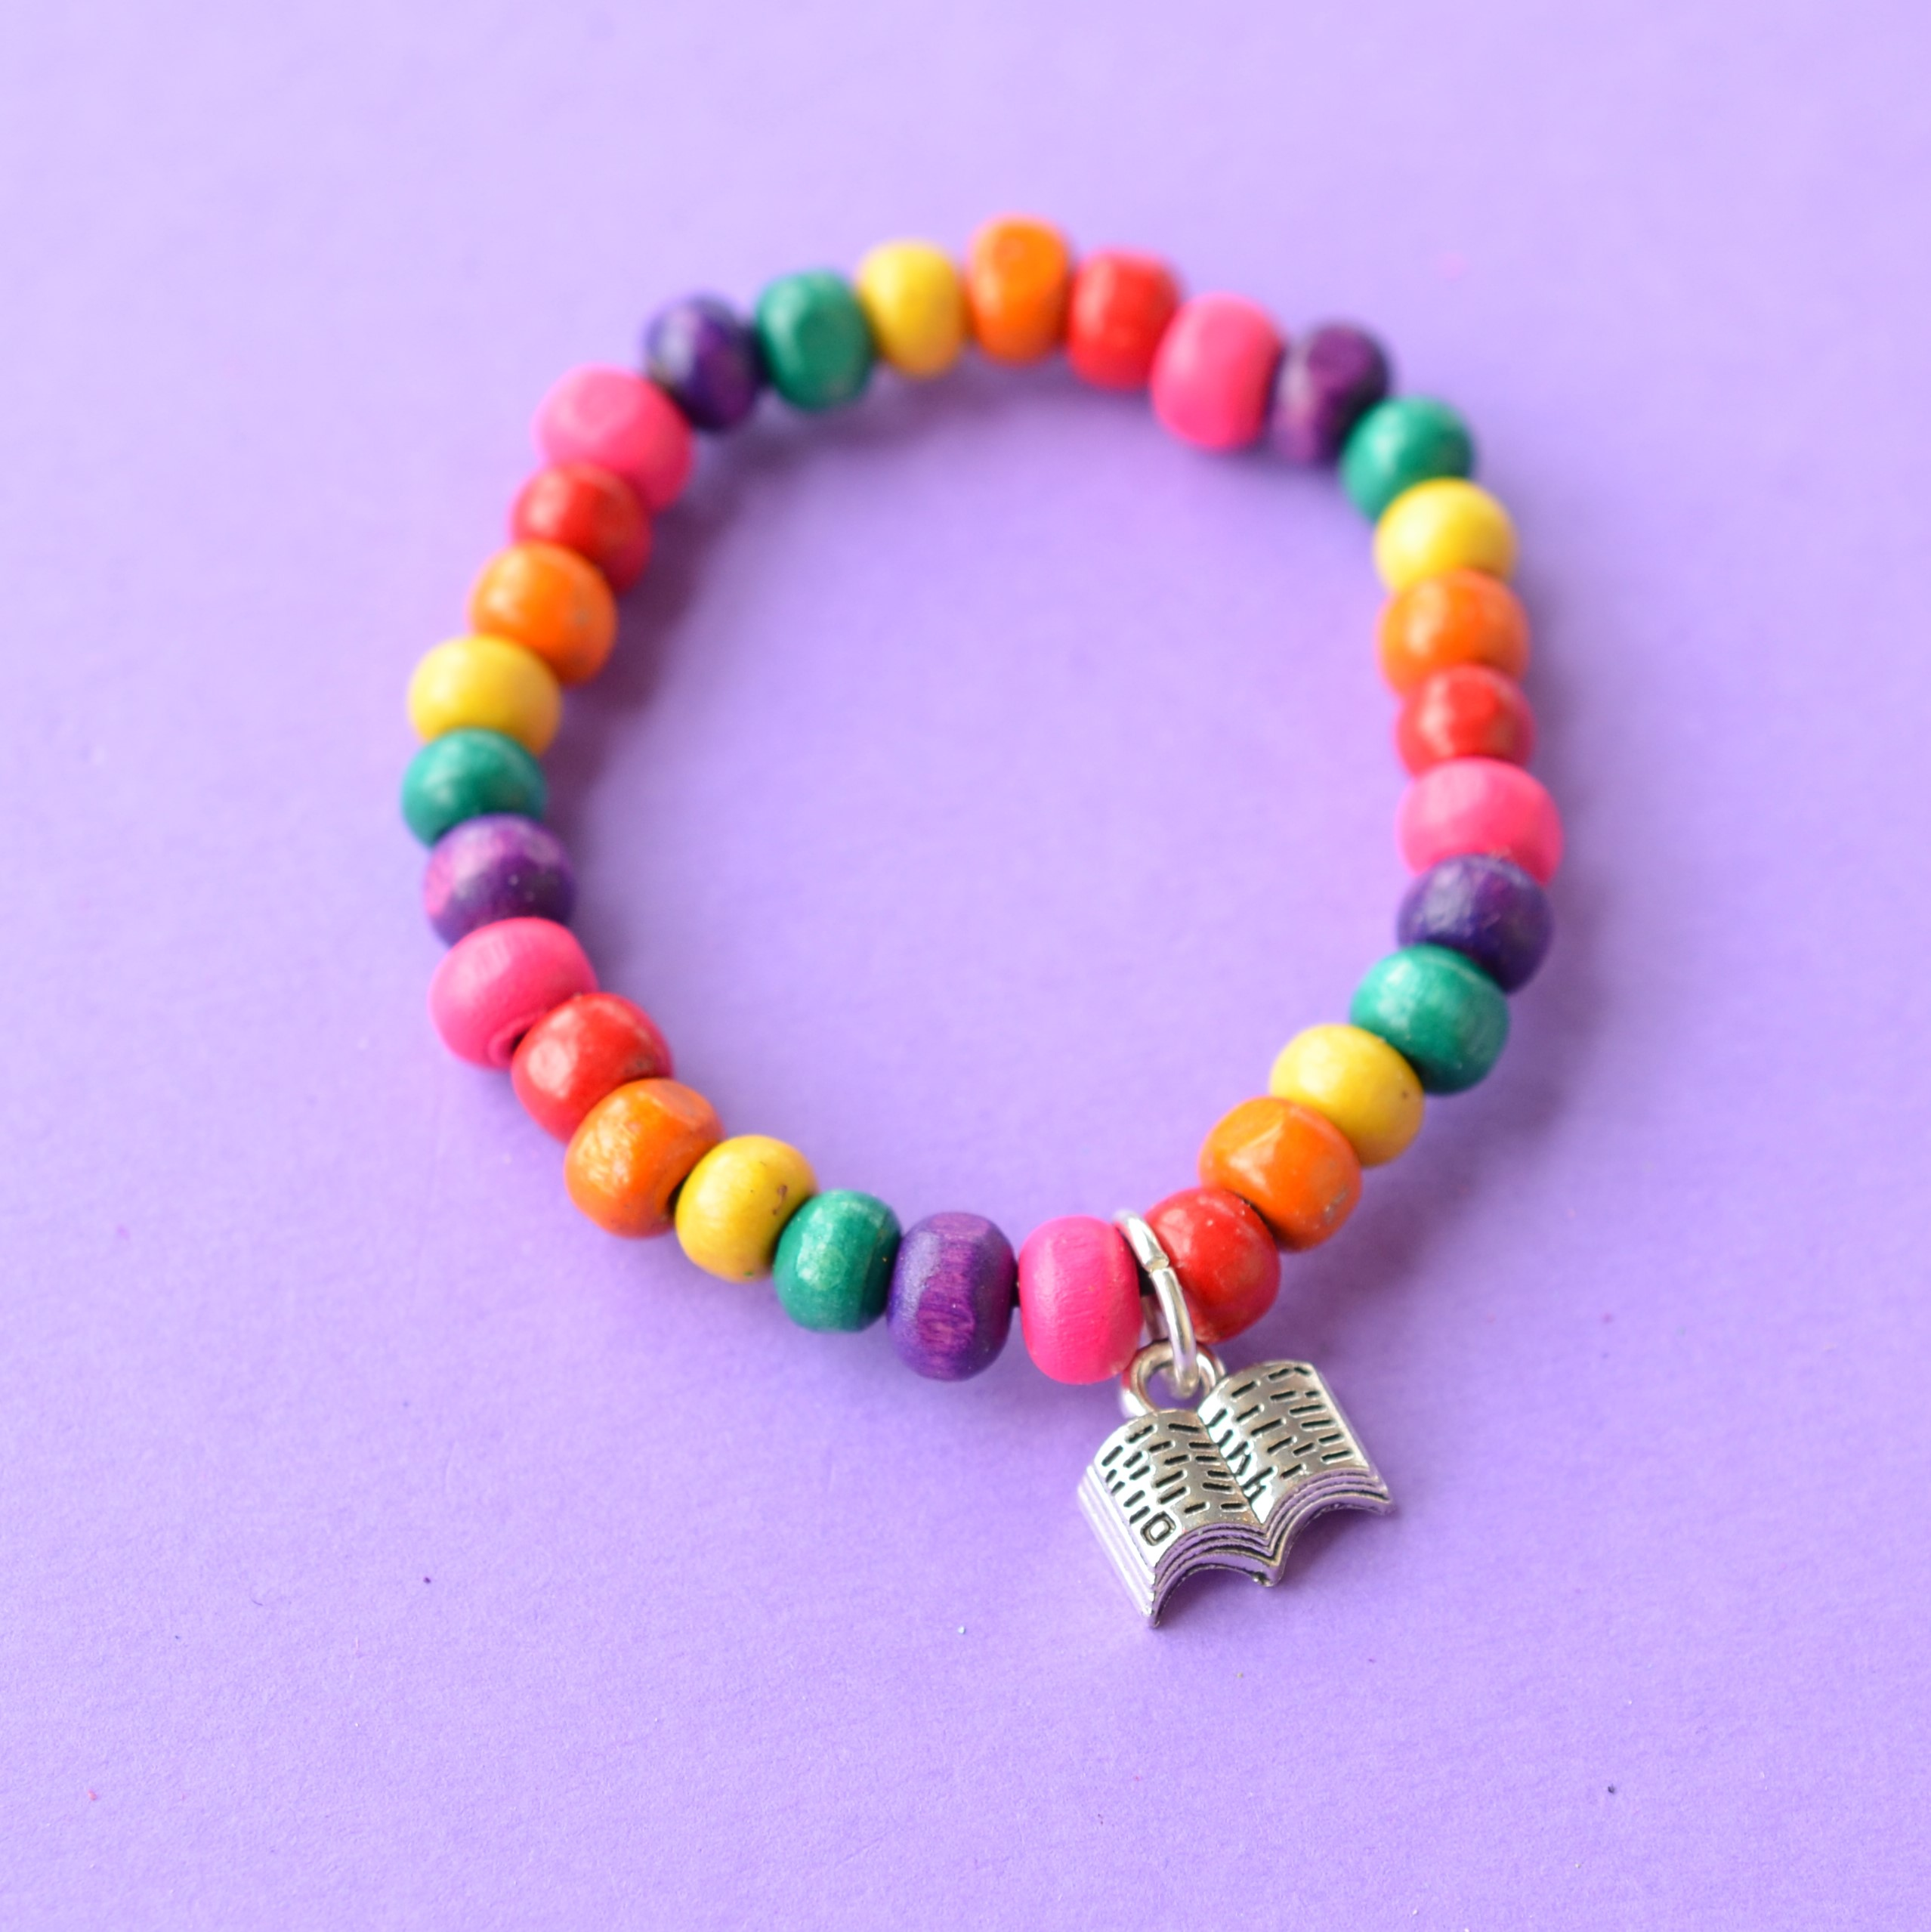 Book Colourful Child's Wooden Bead Charm Bracelet Reading